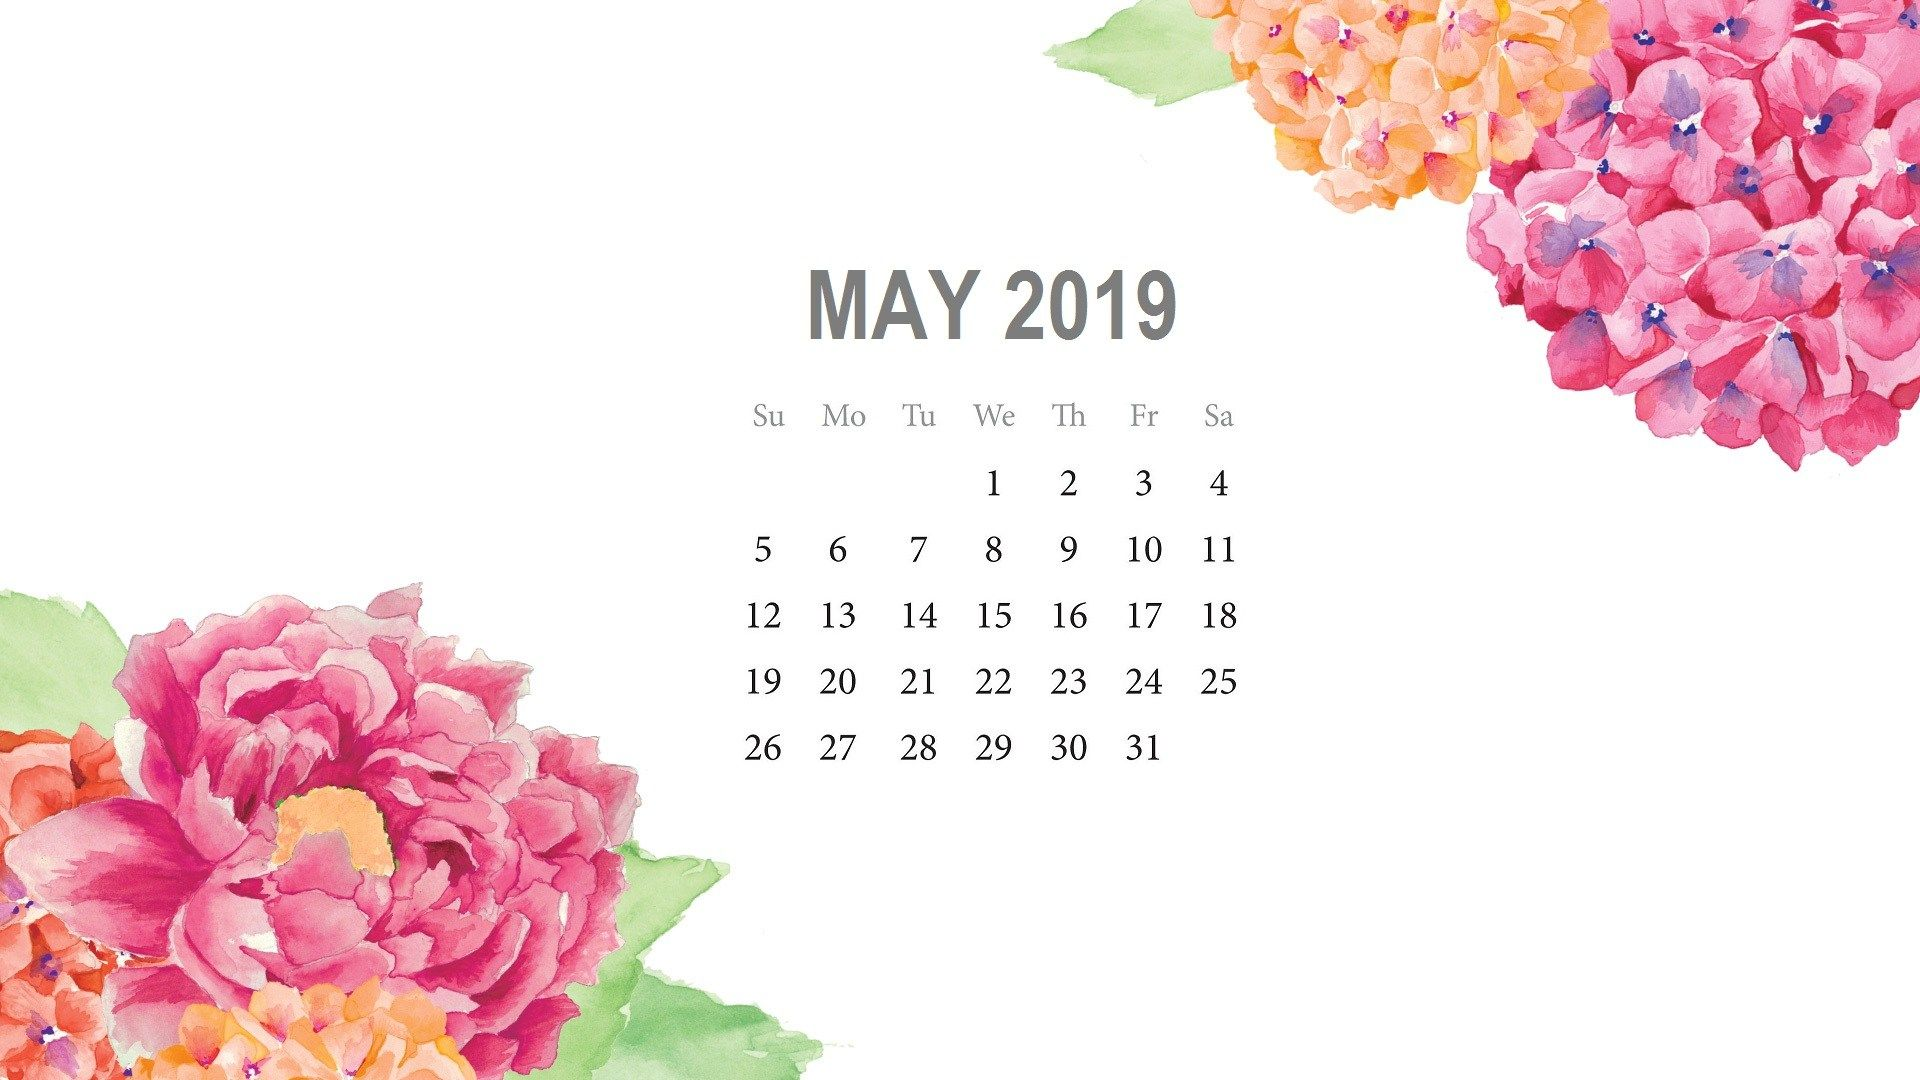 May 2019 Desktop Calendar Wallpaper Cute Floral Printable May 1920x1080